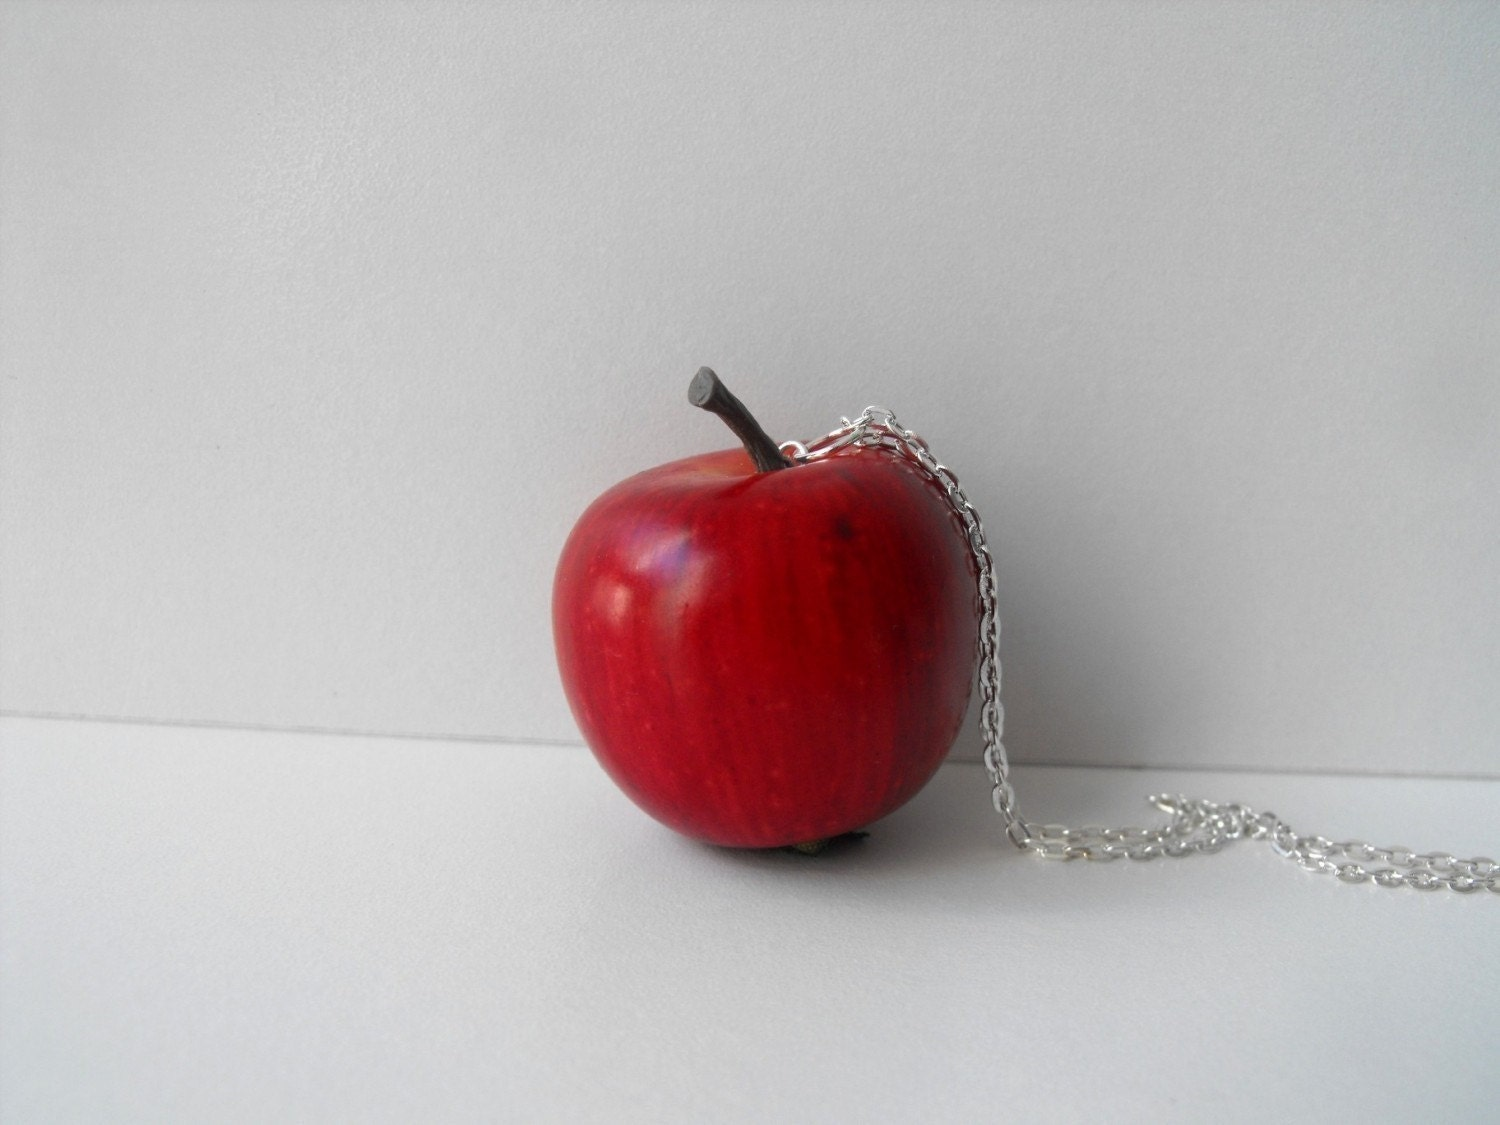 Petite Pomme Red Apple Necklace